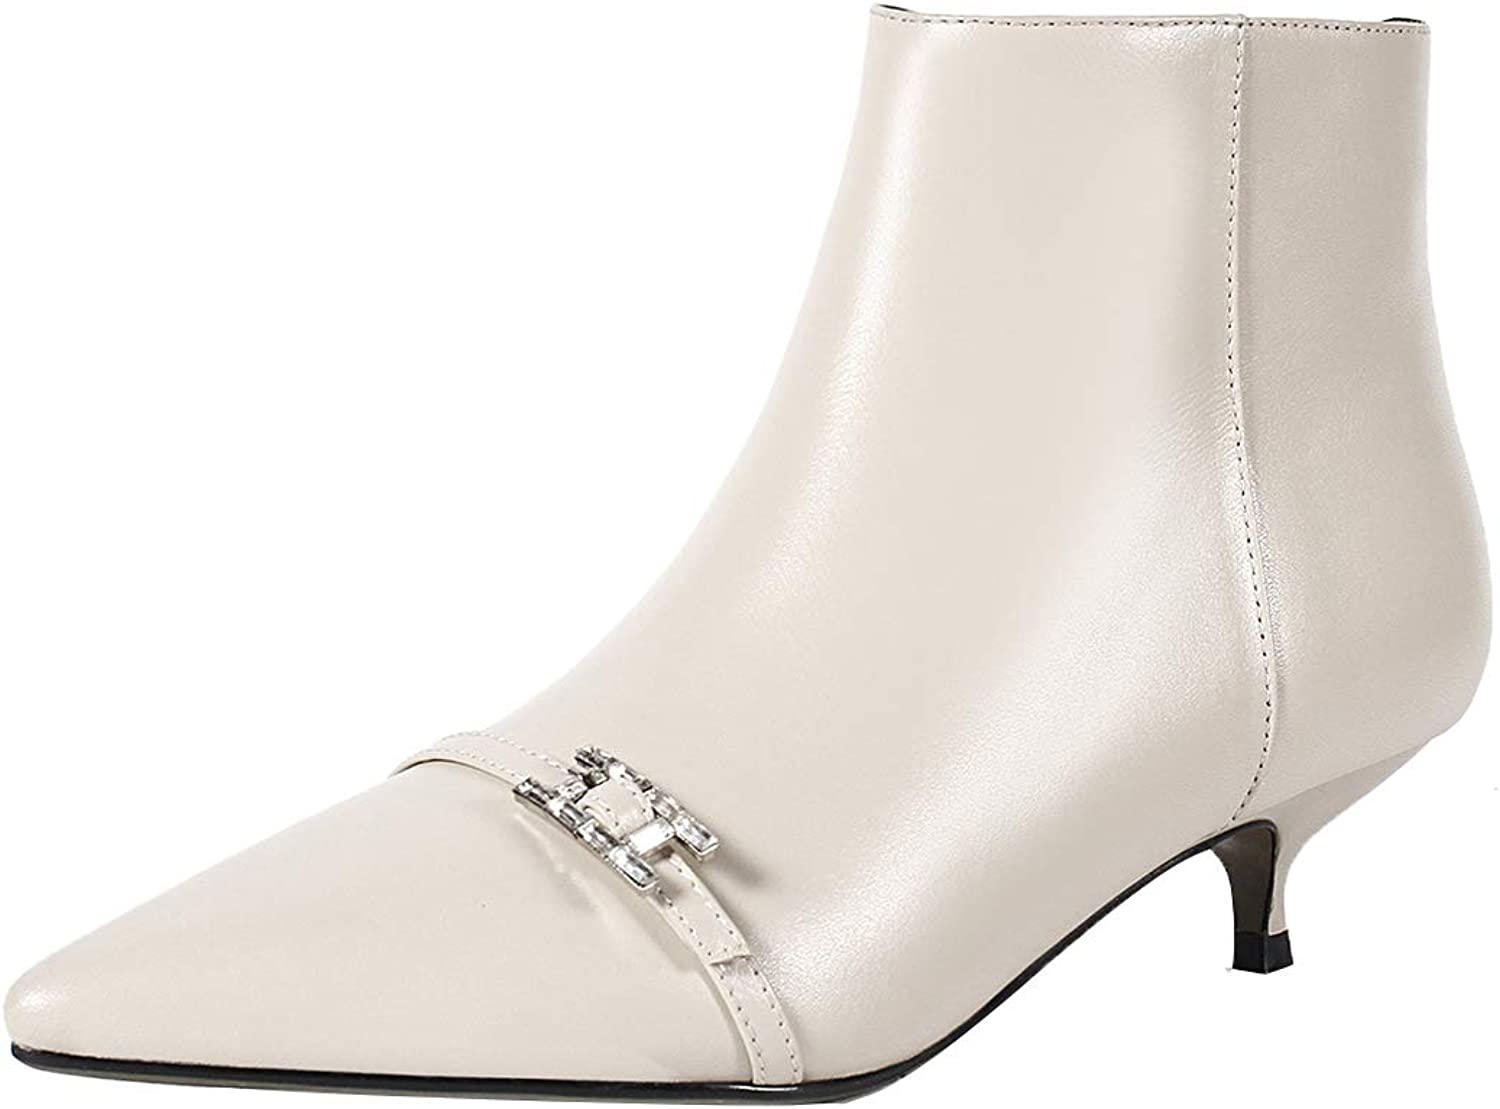 MAYPIE Womens Toambit Leather Zipper Ankle Boots